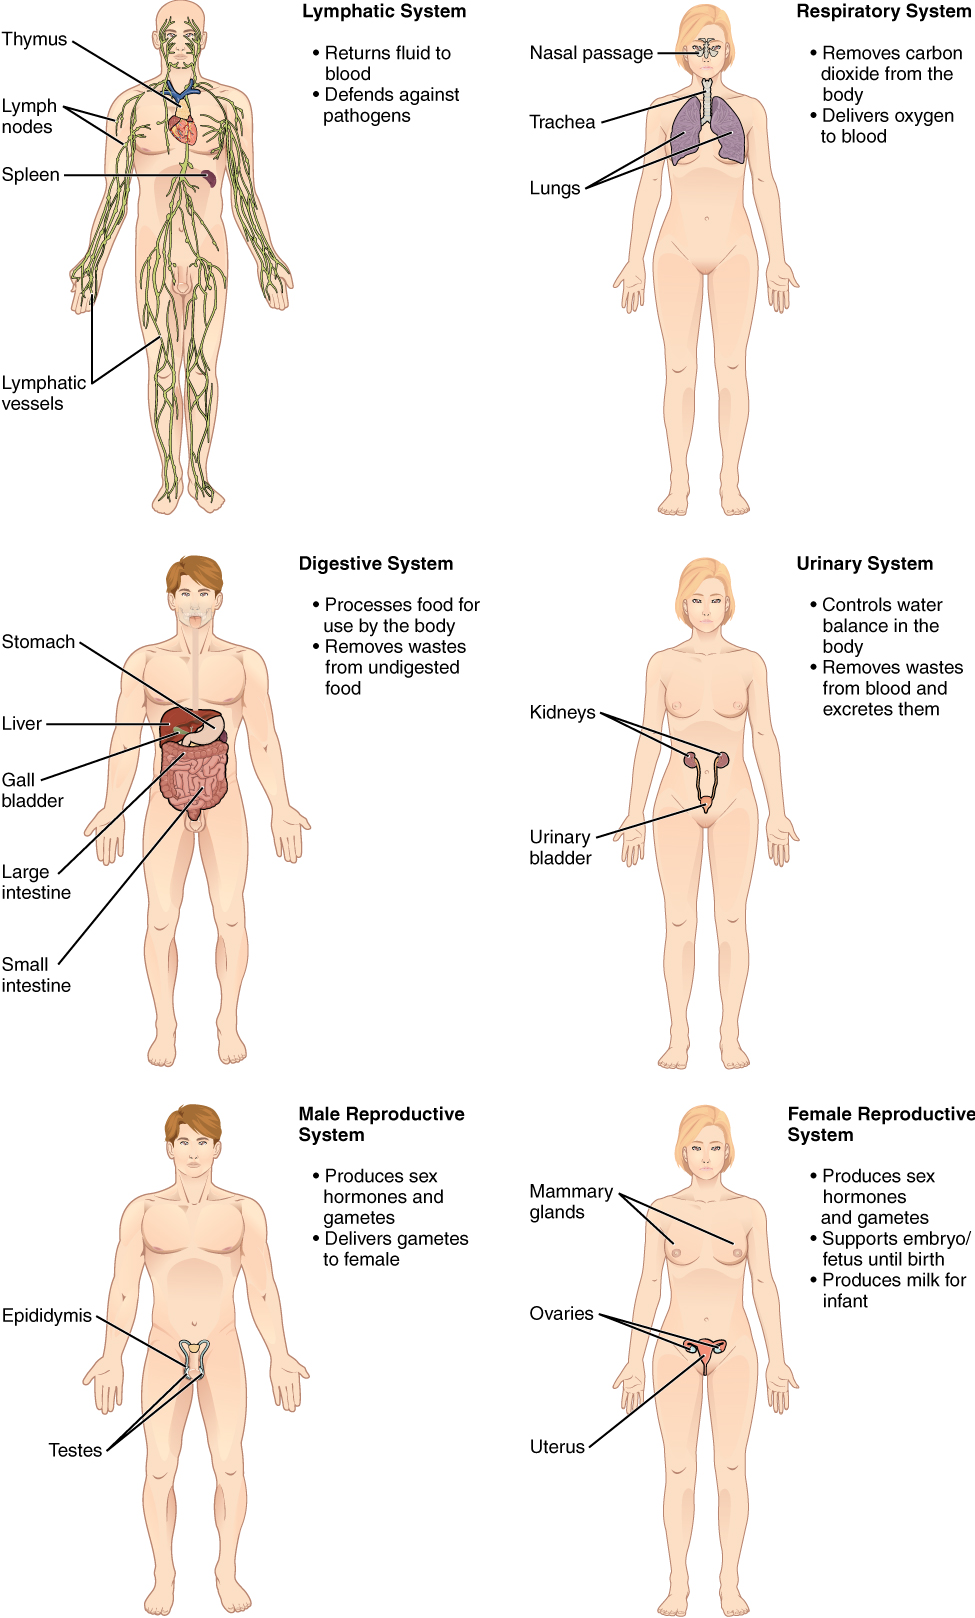 Organ Systems of the Human Body continued from Figure 5.2. Image description available.